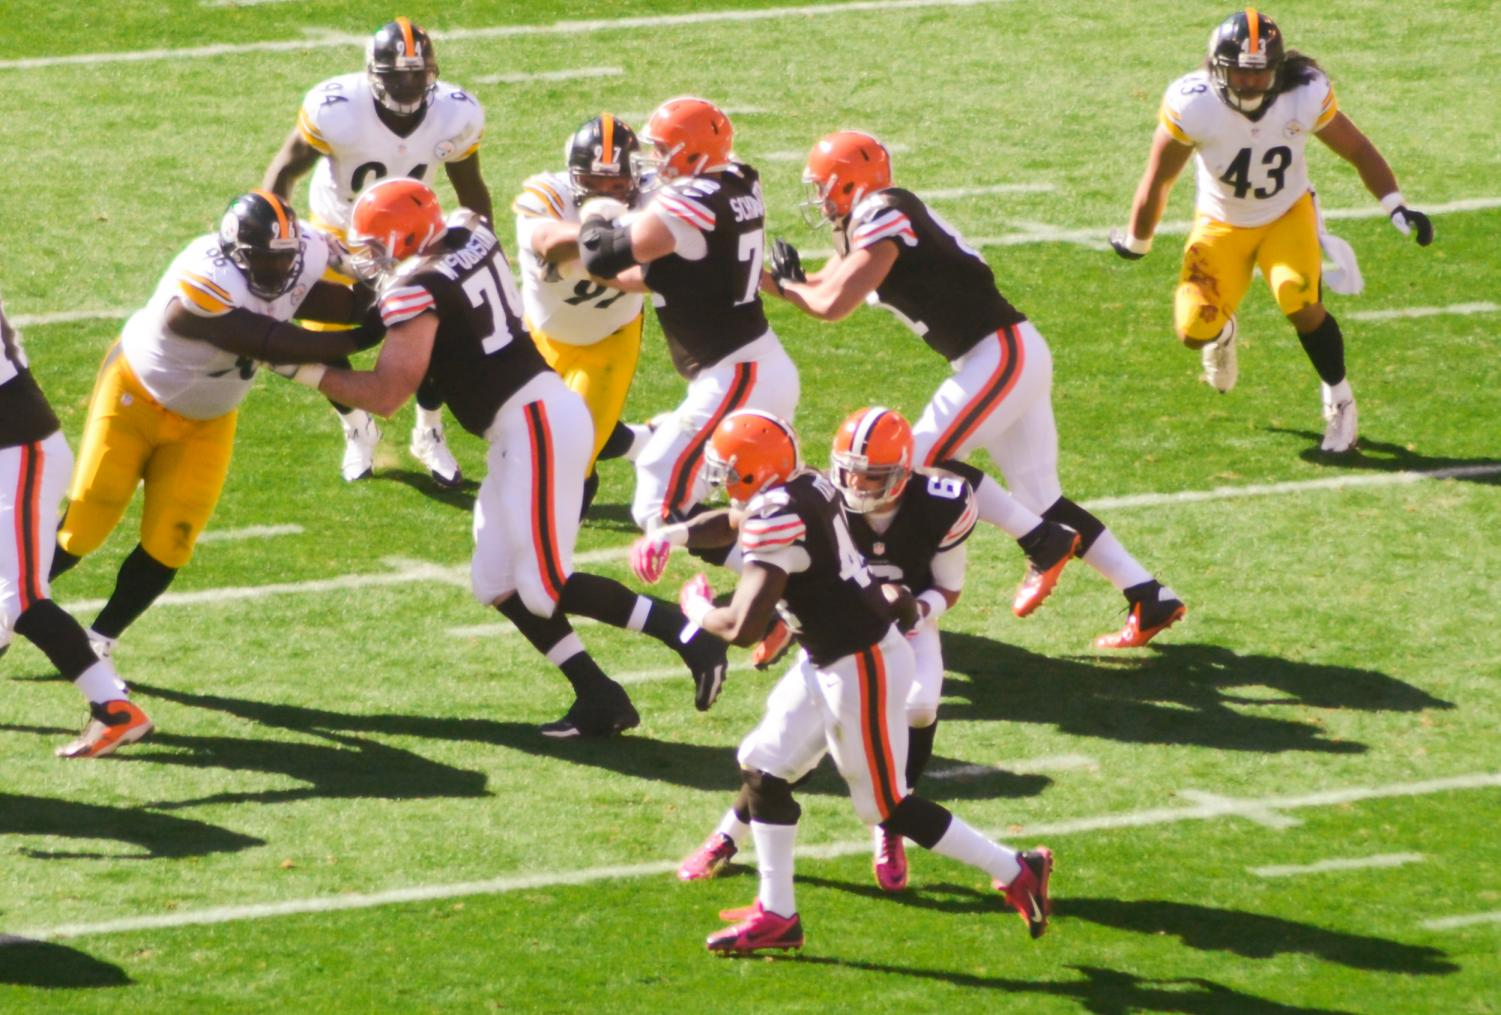 Steelers, Browns battle it out in Cleveland in 2014. The Browns won 31-10.